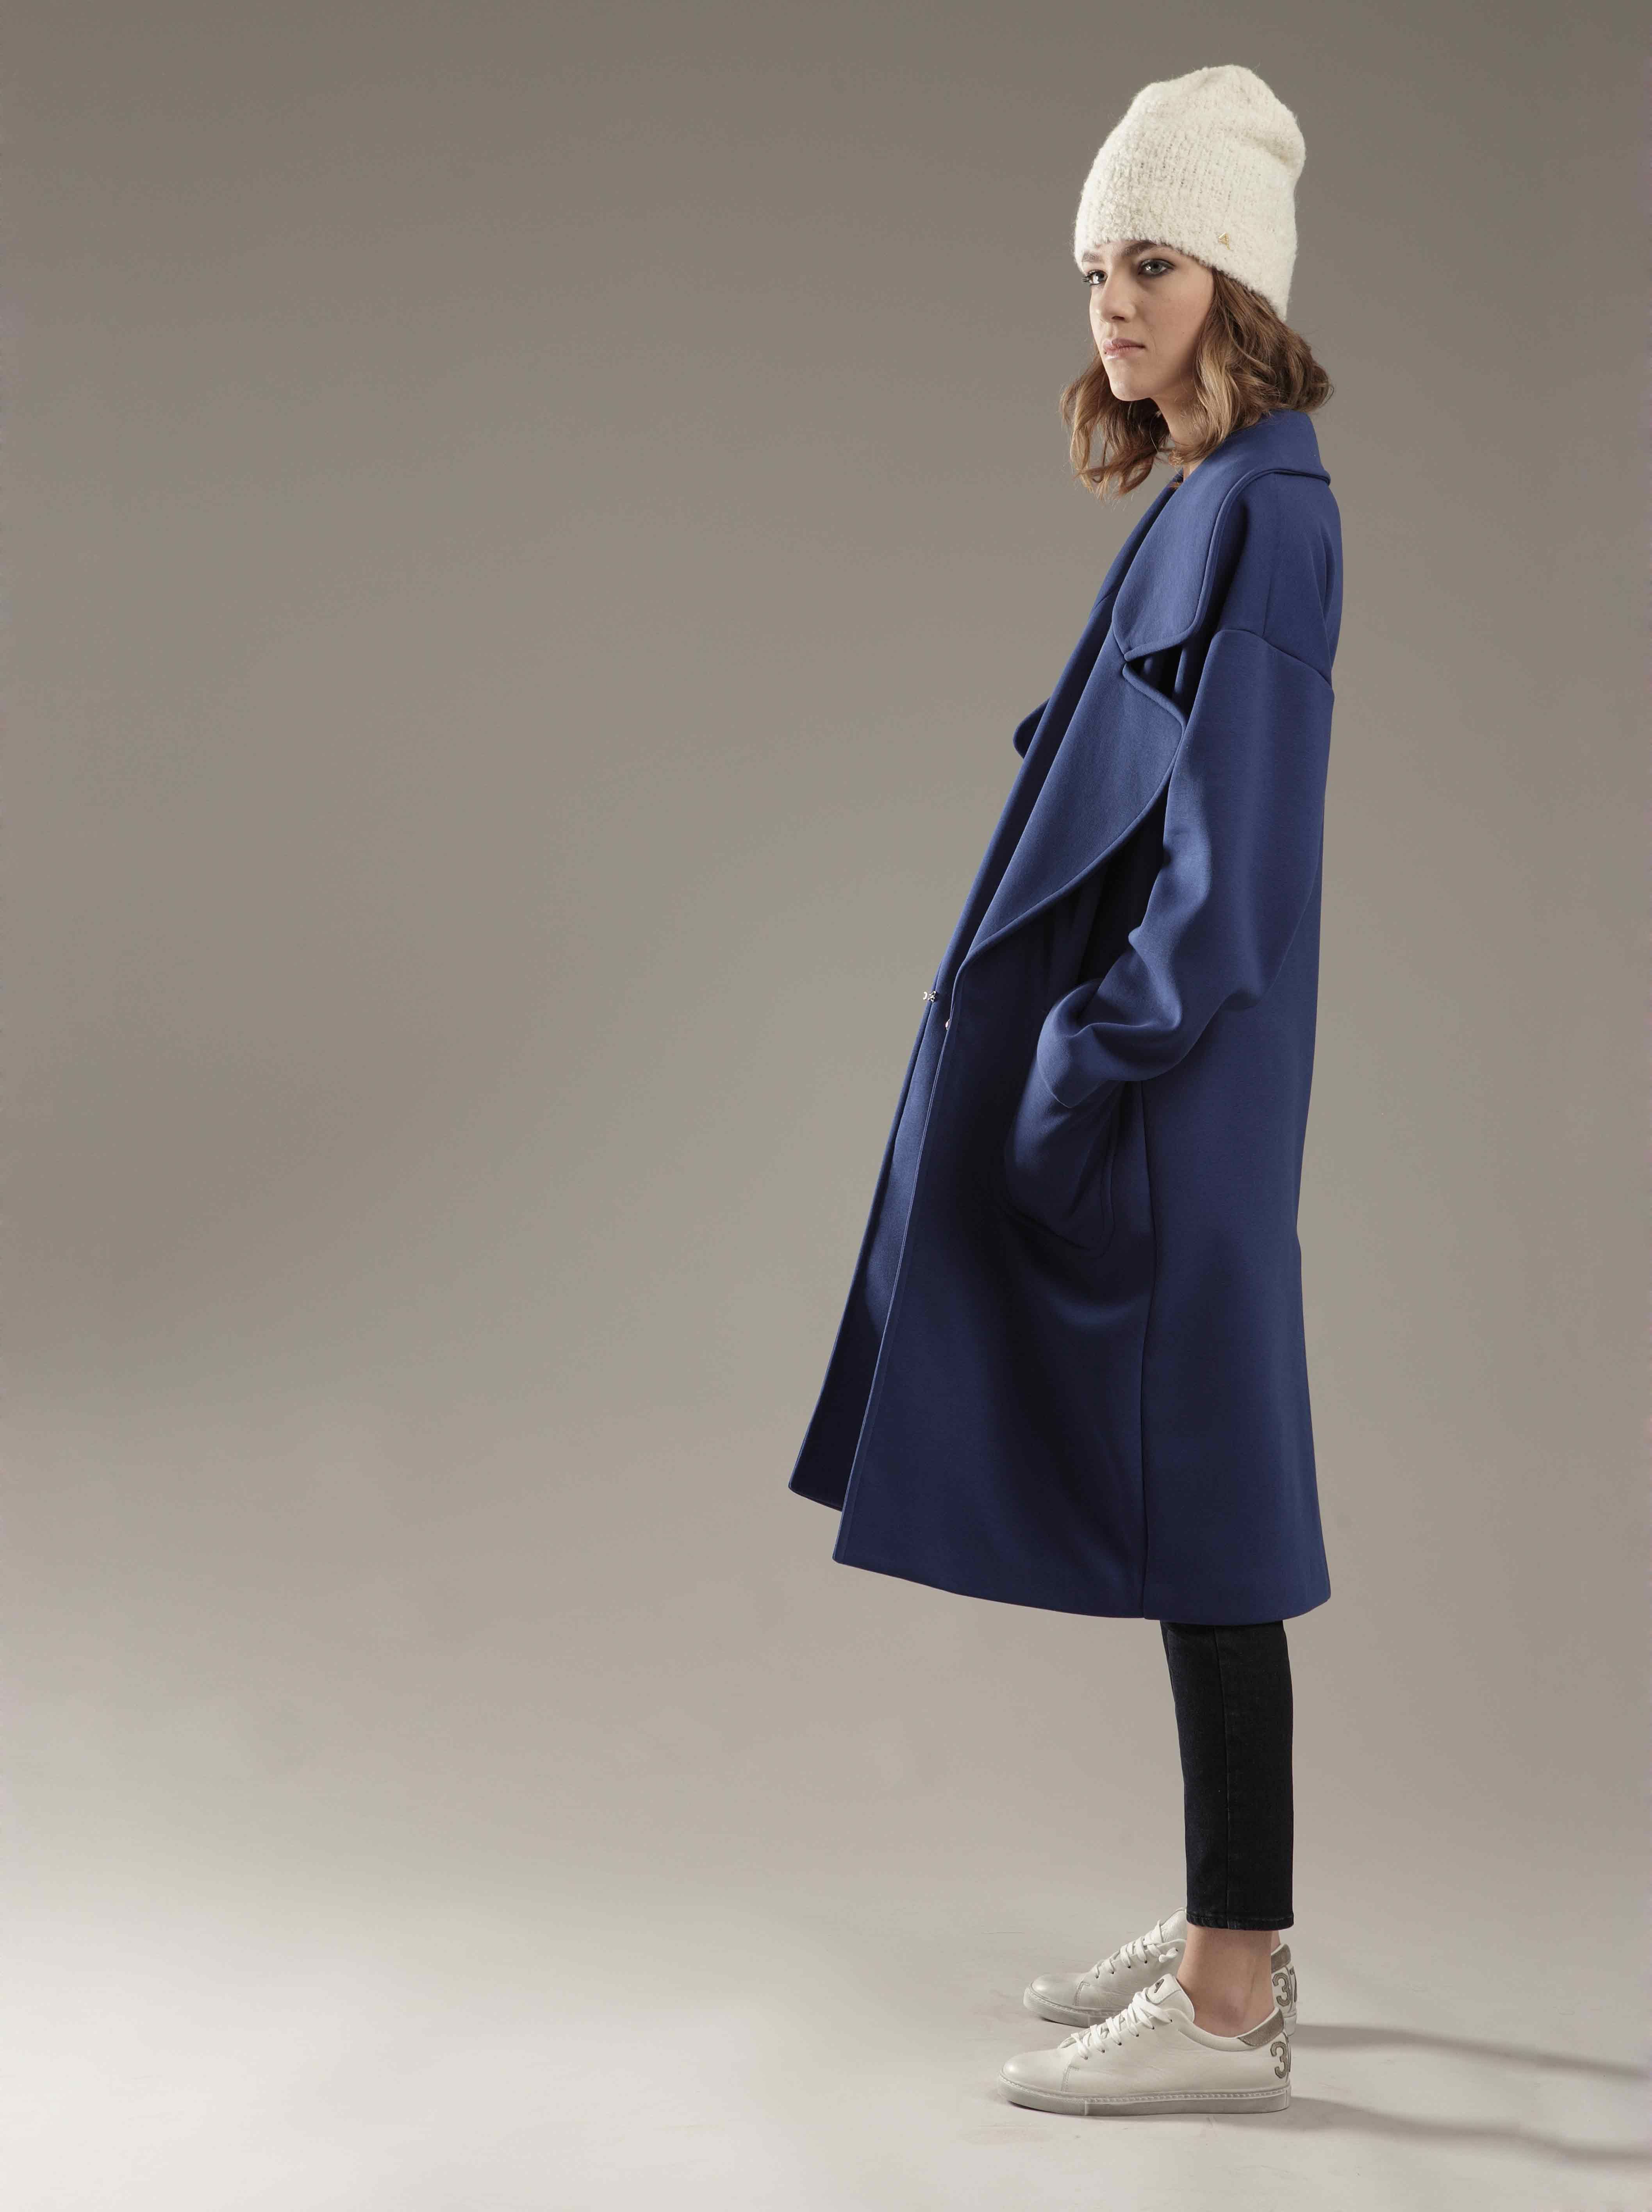 #blue #coat #madeinitaly by #CYCLEJEANS